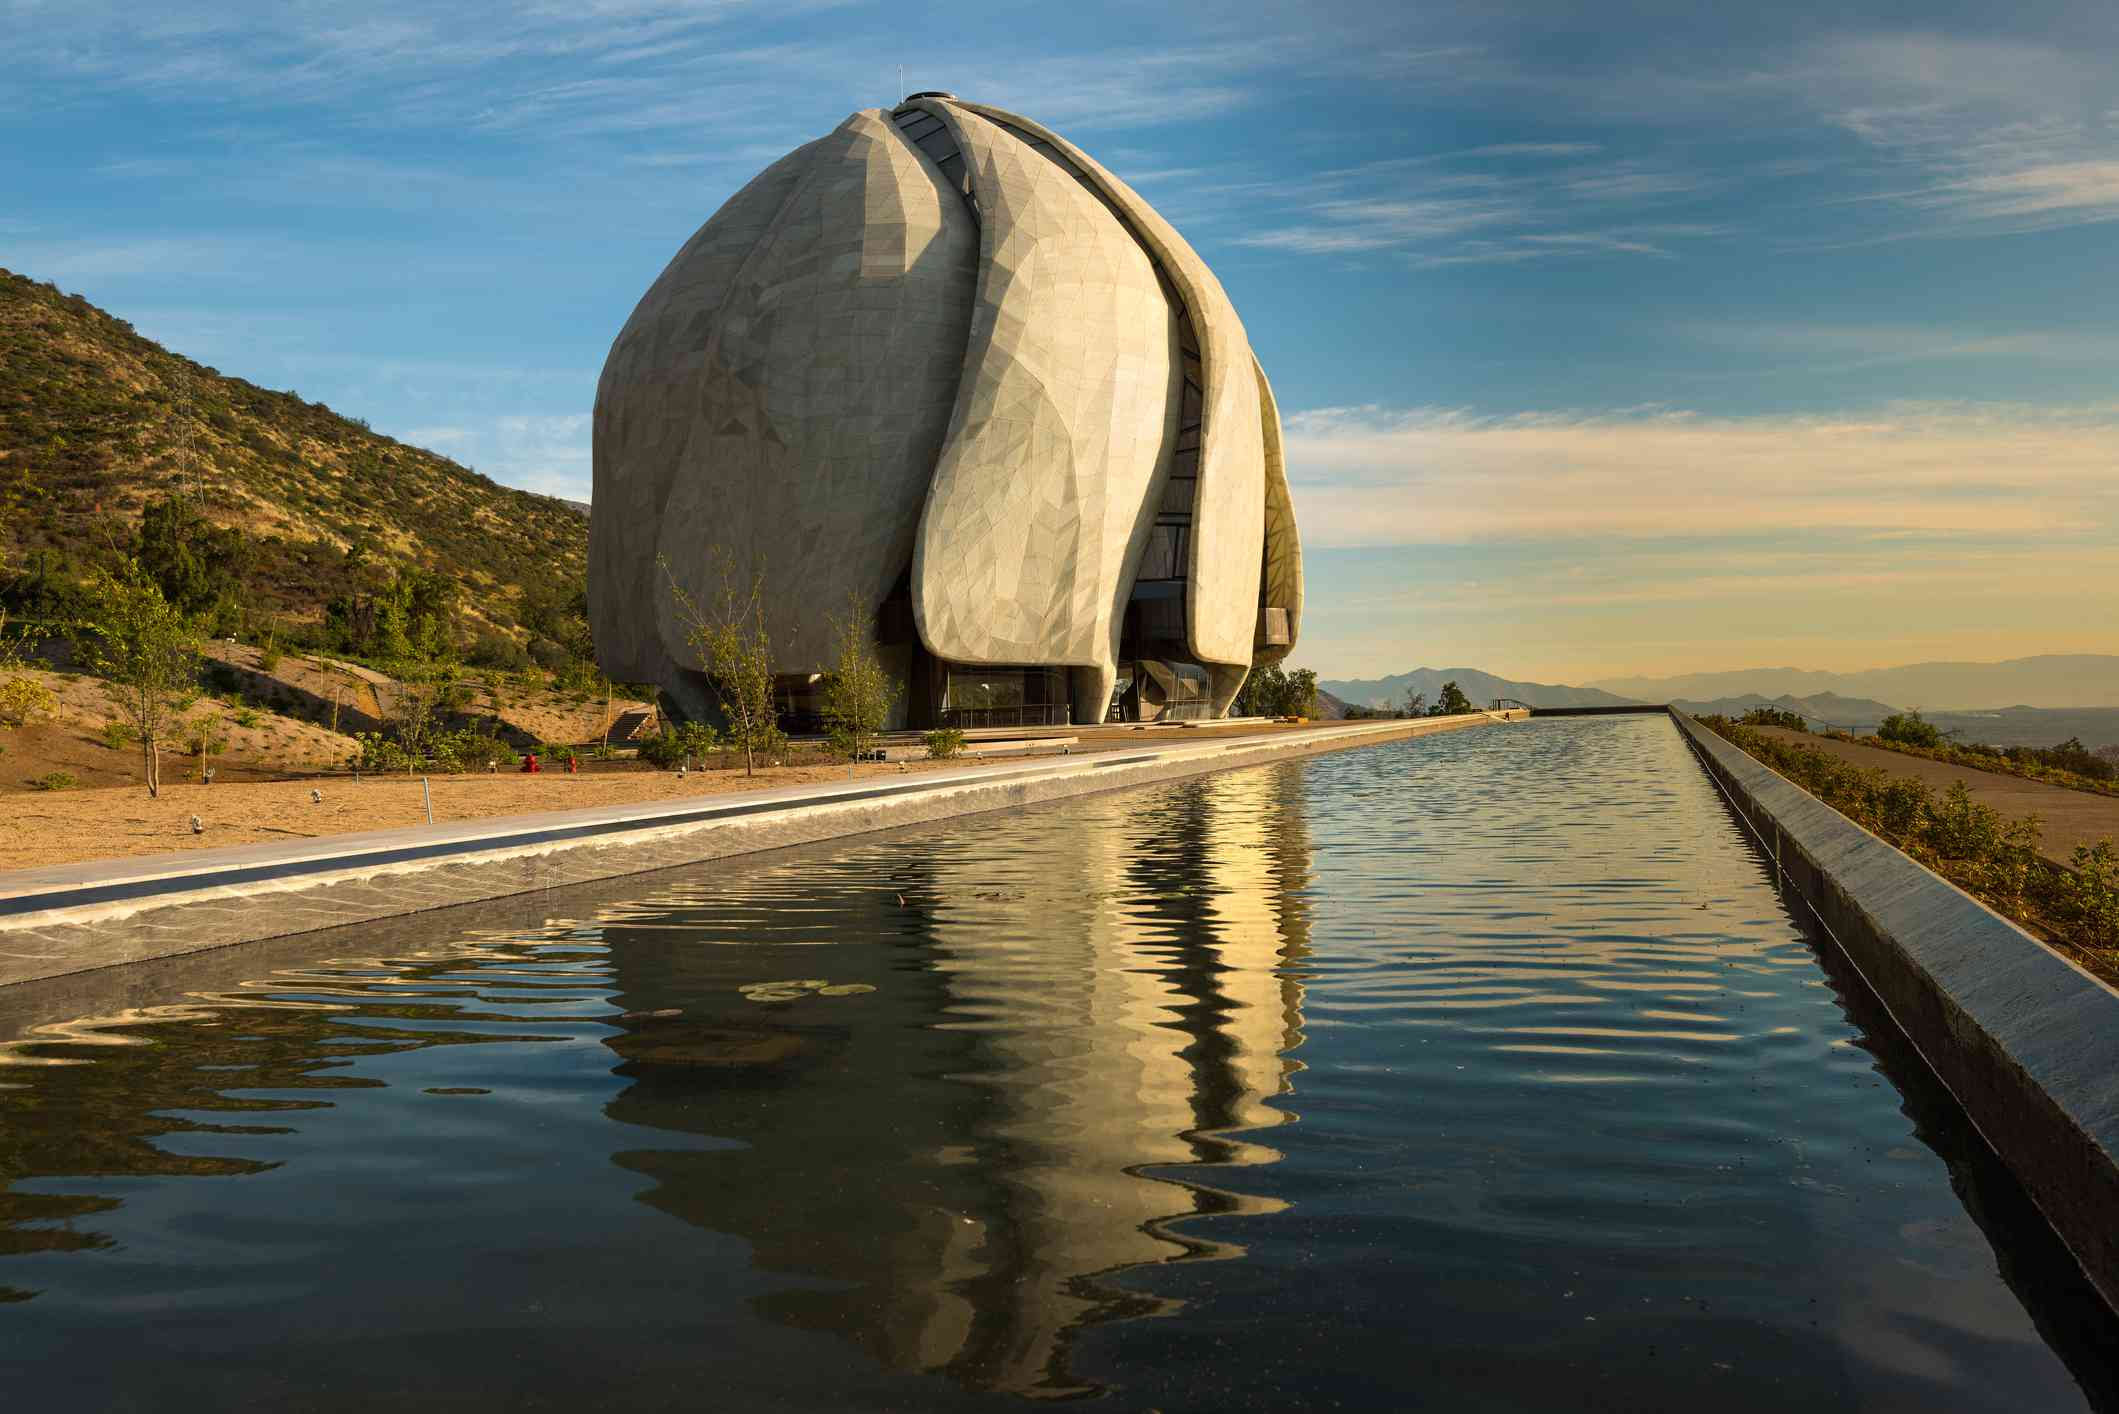 Santiago, Region Metropolitana, Chile - October 13, 2016: After 6 years of construction, today is inaugurated and opened to public the eighth Bahá'í temple in the world and first in South America, located at the foot of the Andes mountain Range.